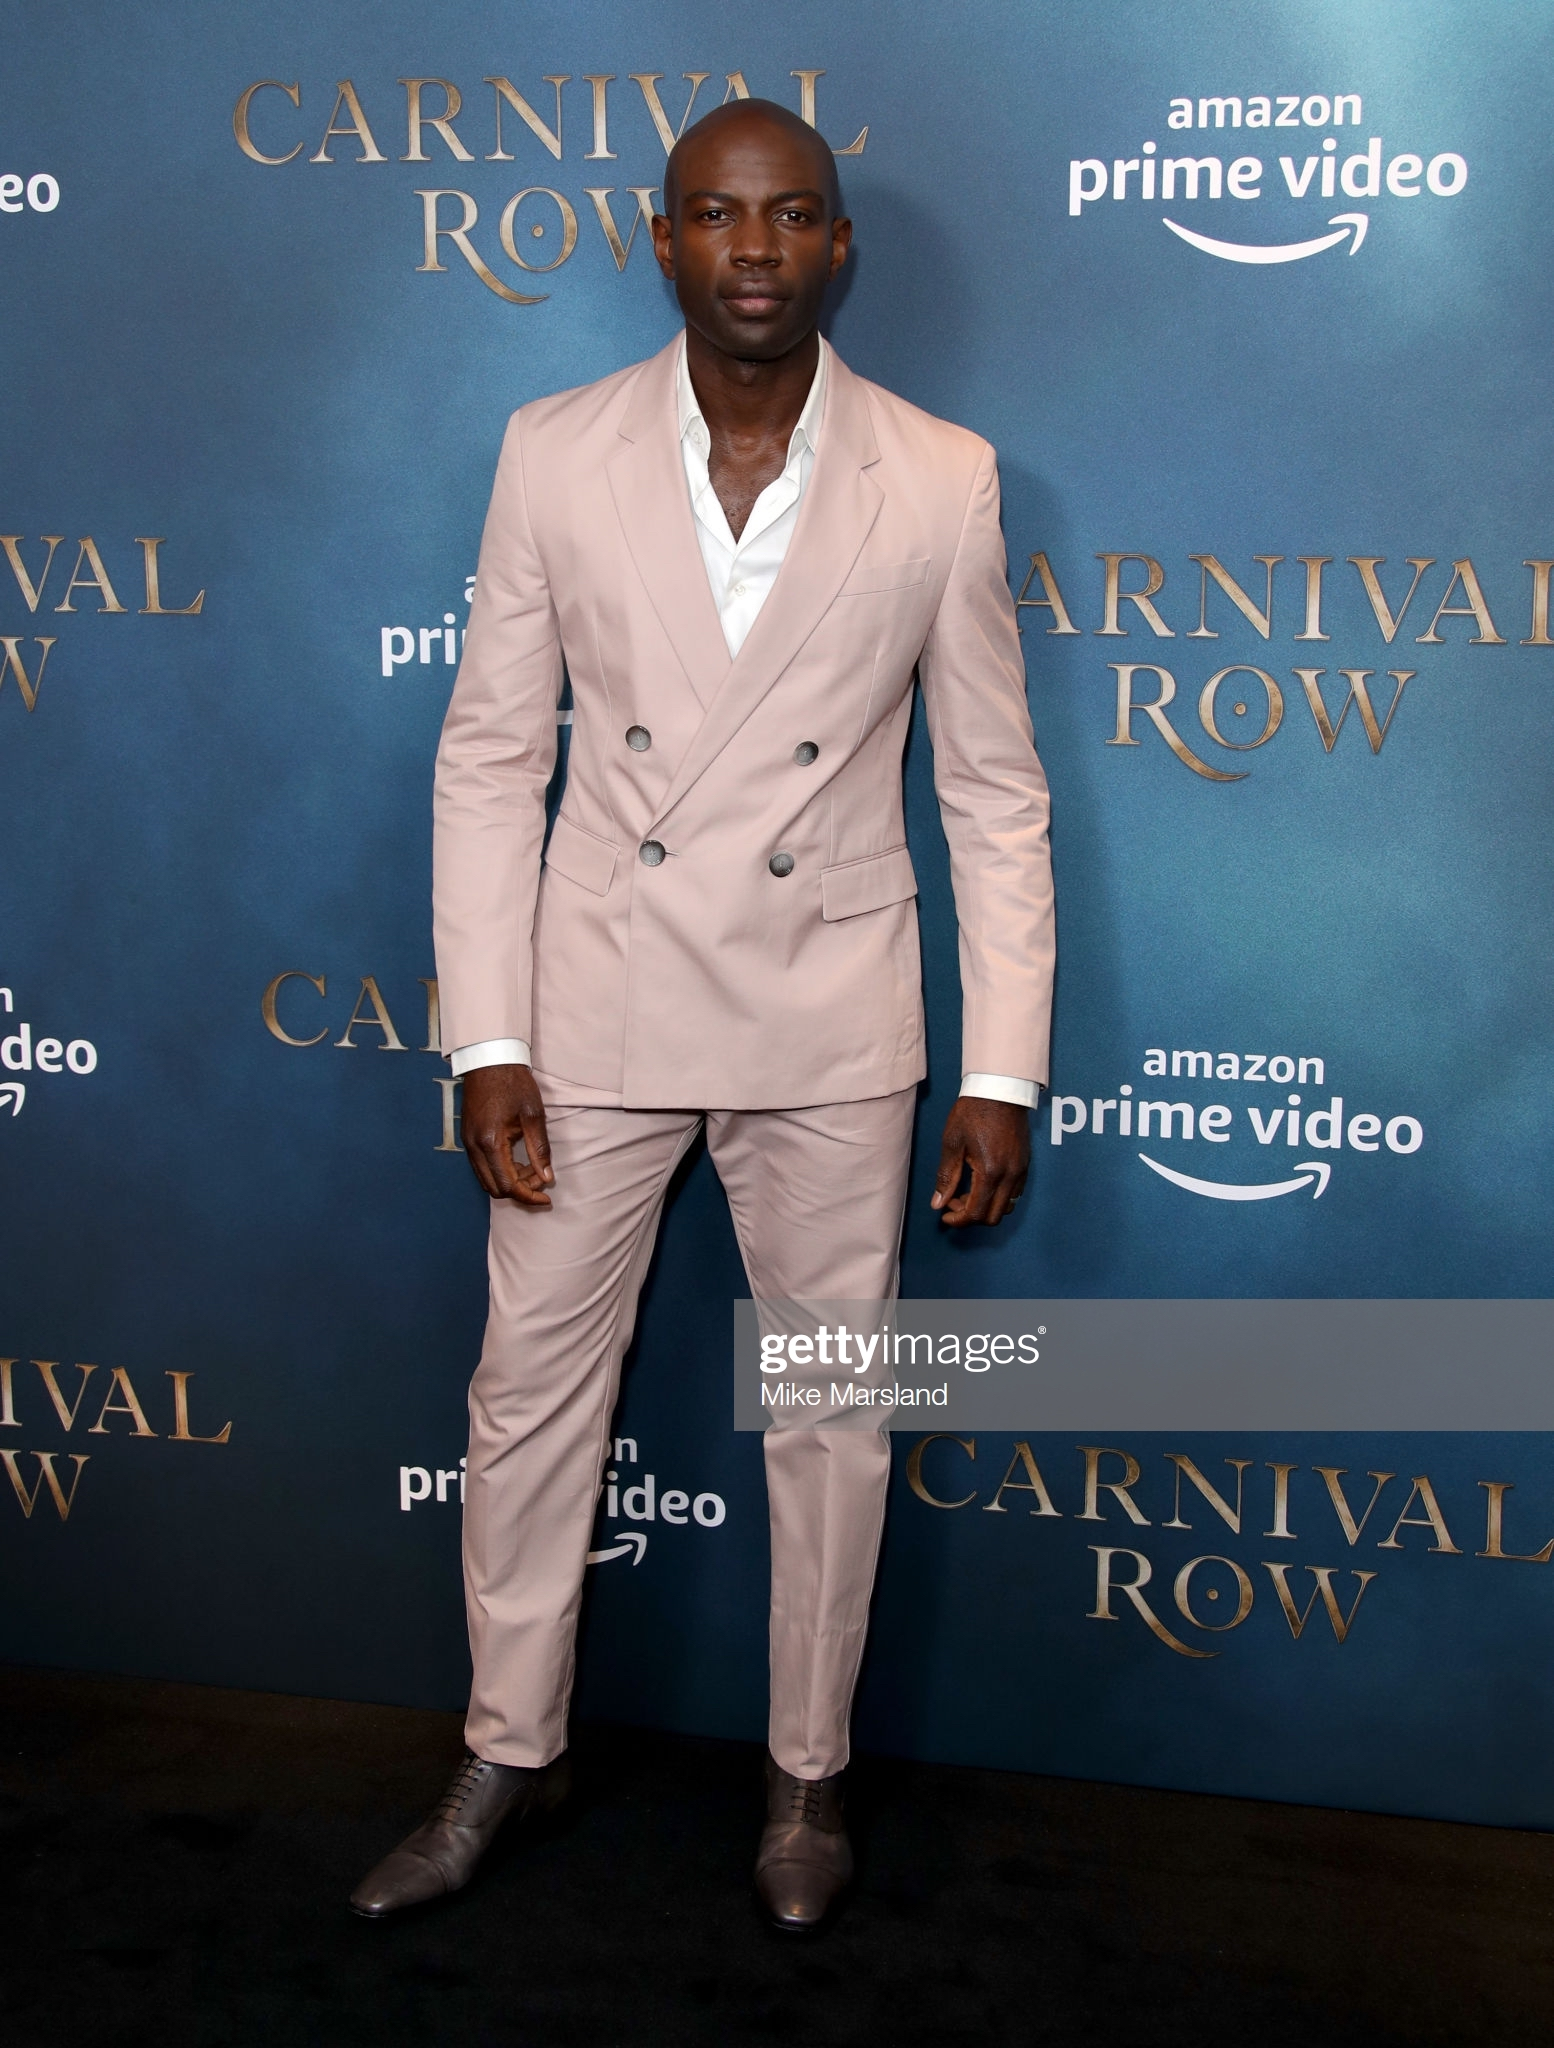 August 28 2019 Carnival Row Premiere UK David Gyasi.jpg